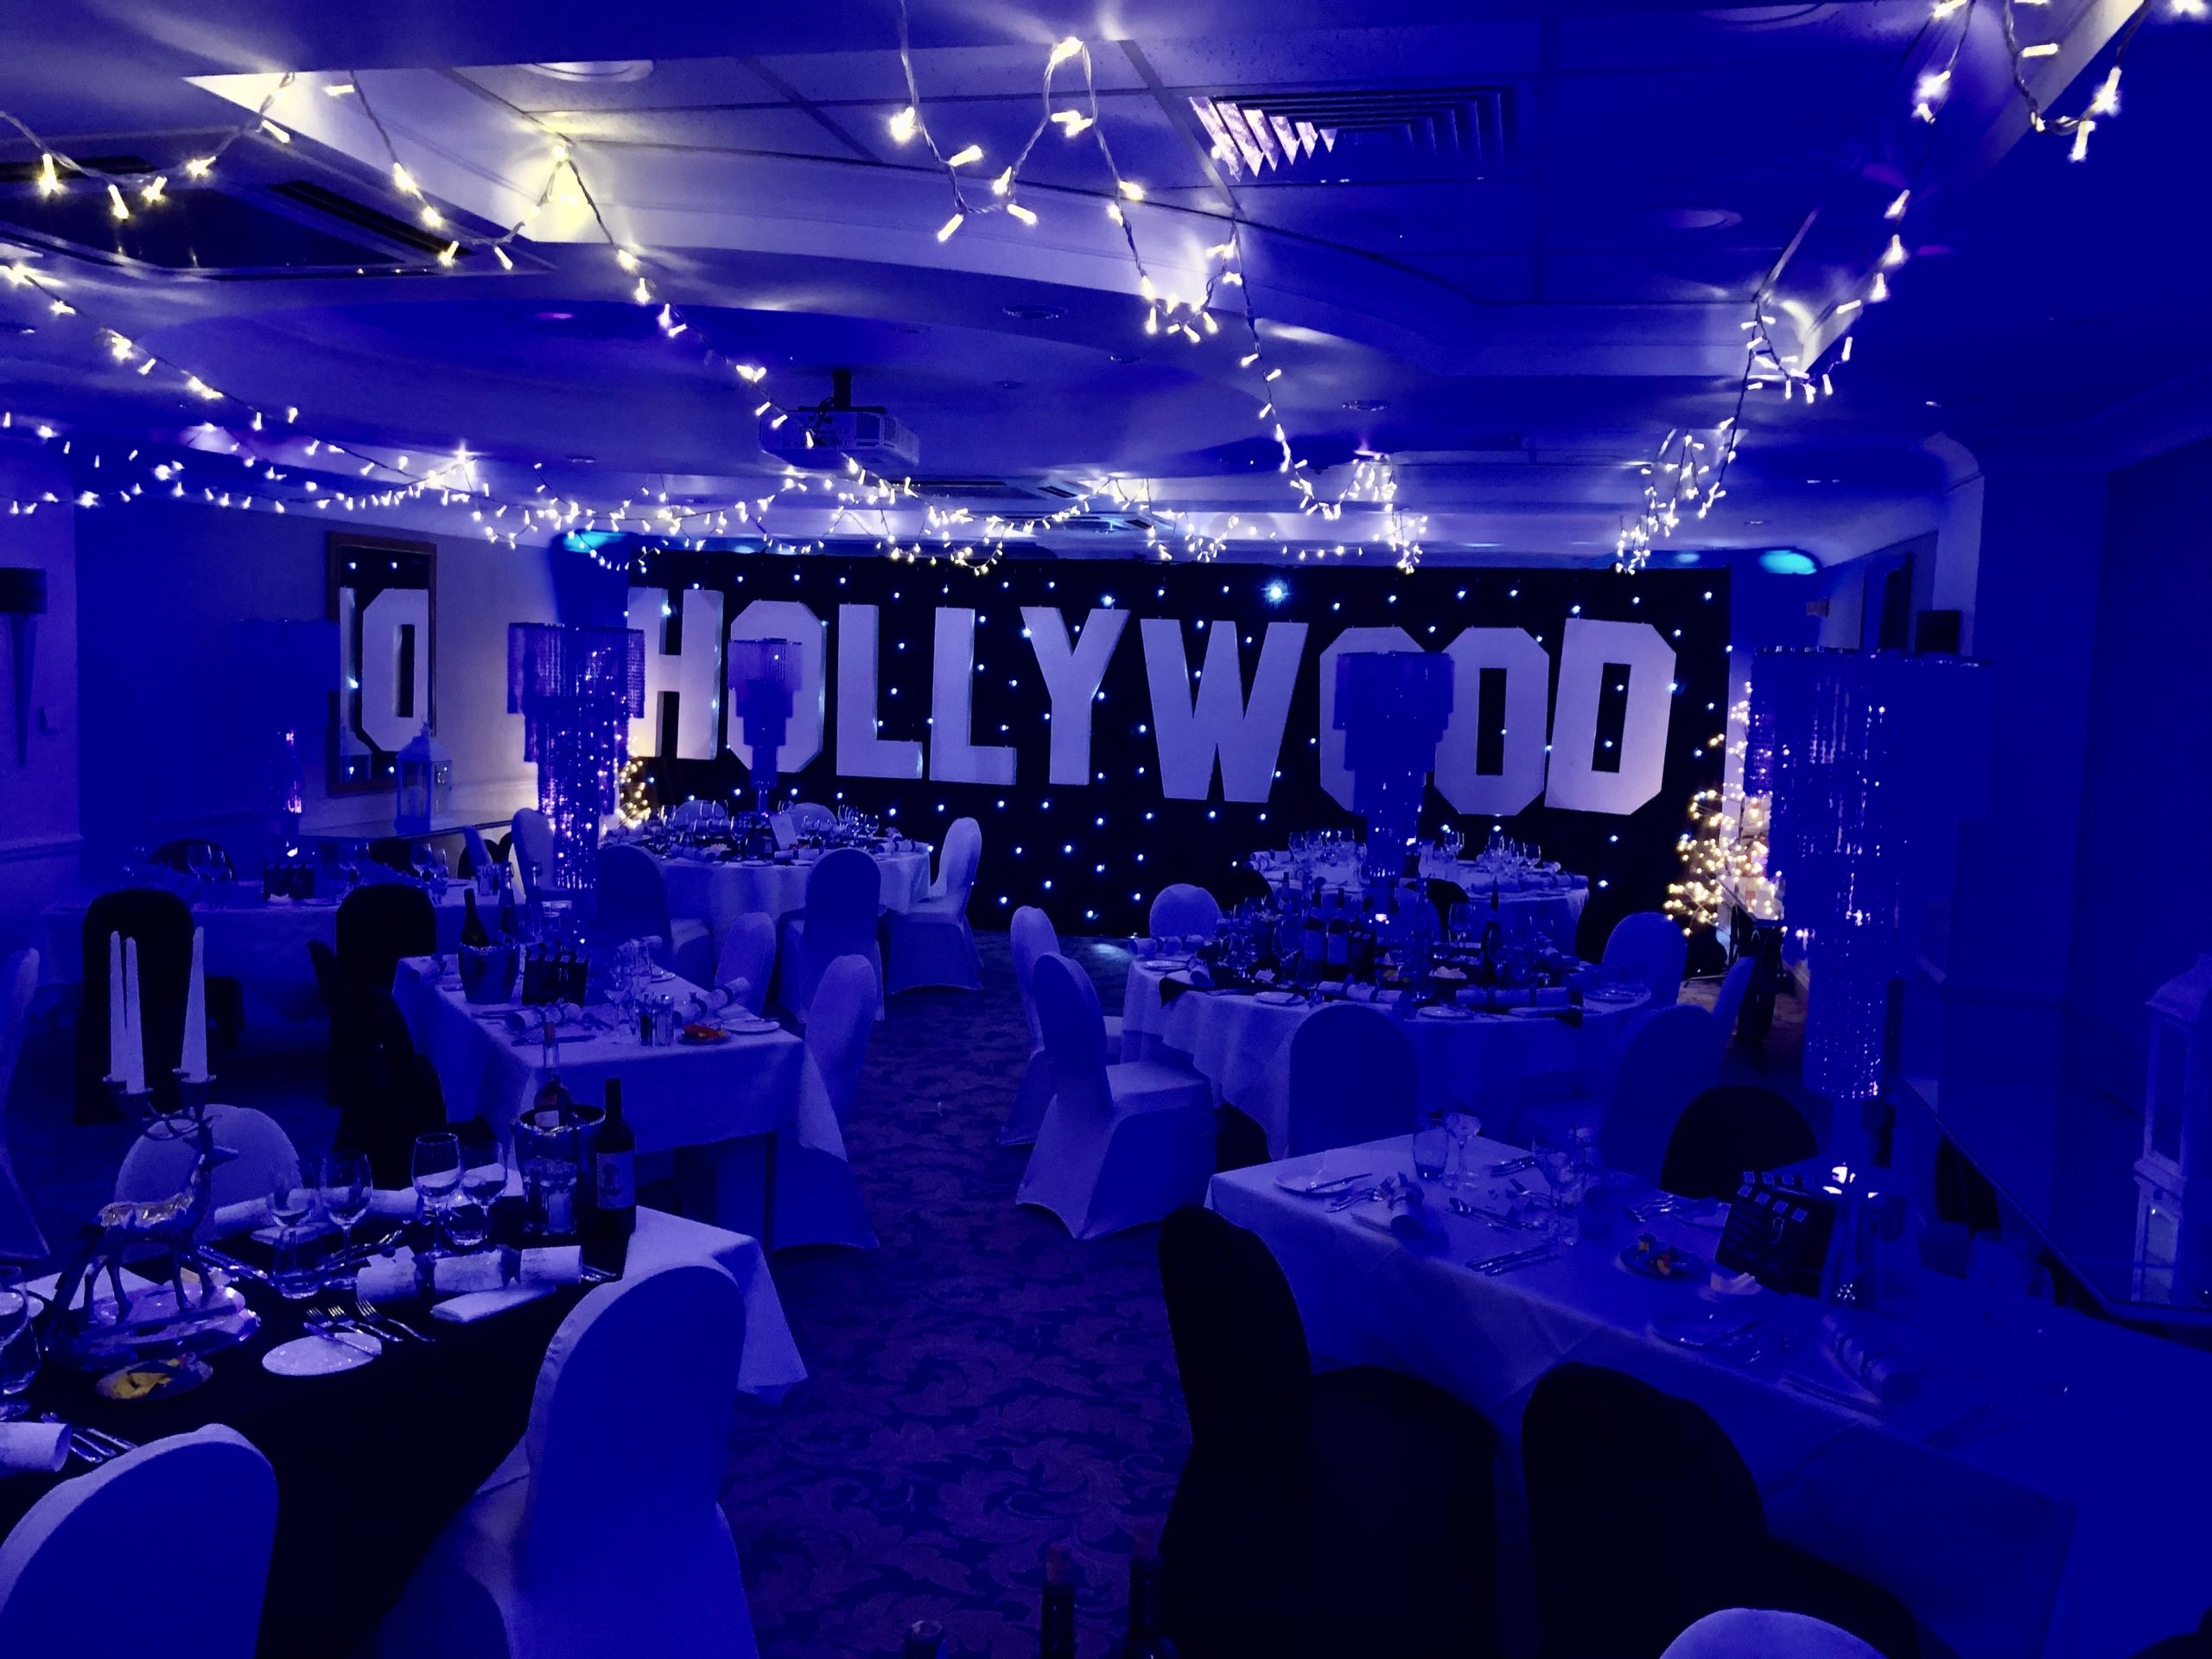 Hollywood Theme Event, Oakley Court Hotel, Windsor